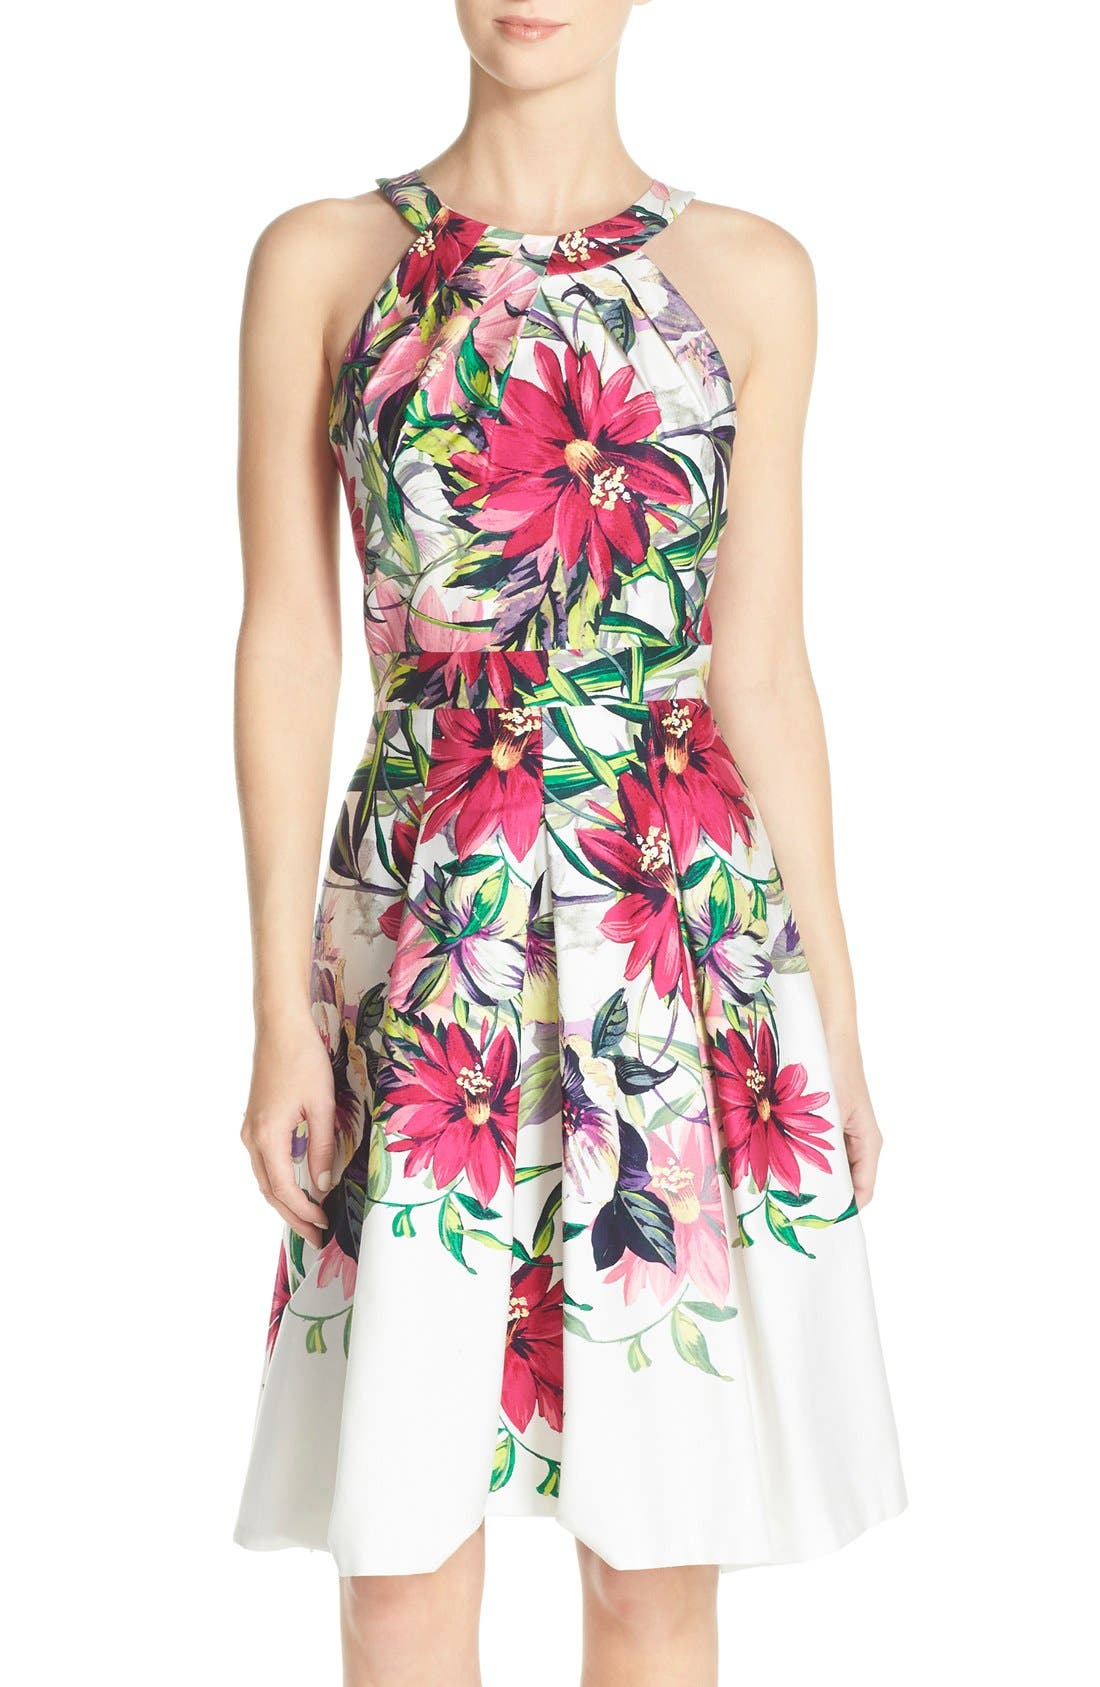 Floral Print Tea Length Fit & Flare Dress,                         Main,                         color, Ivory/ Pink Print